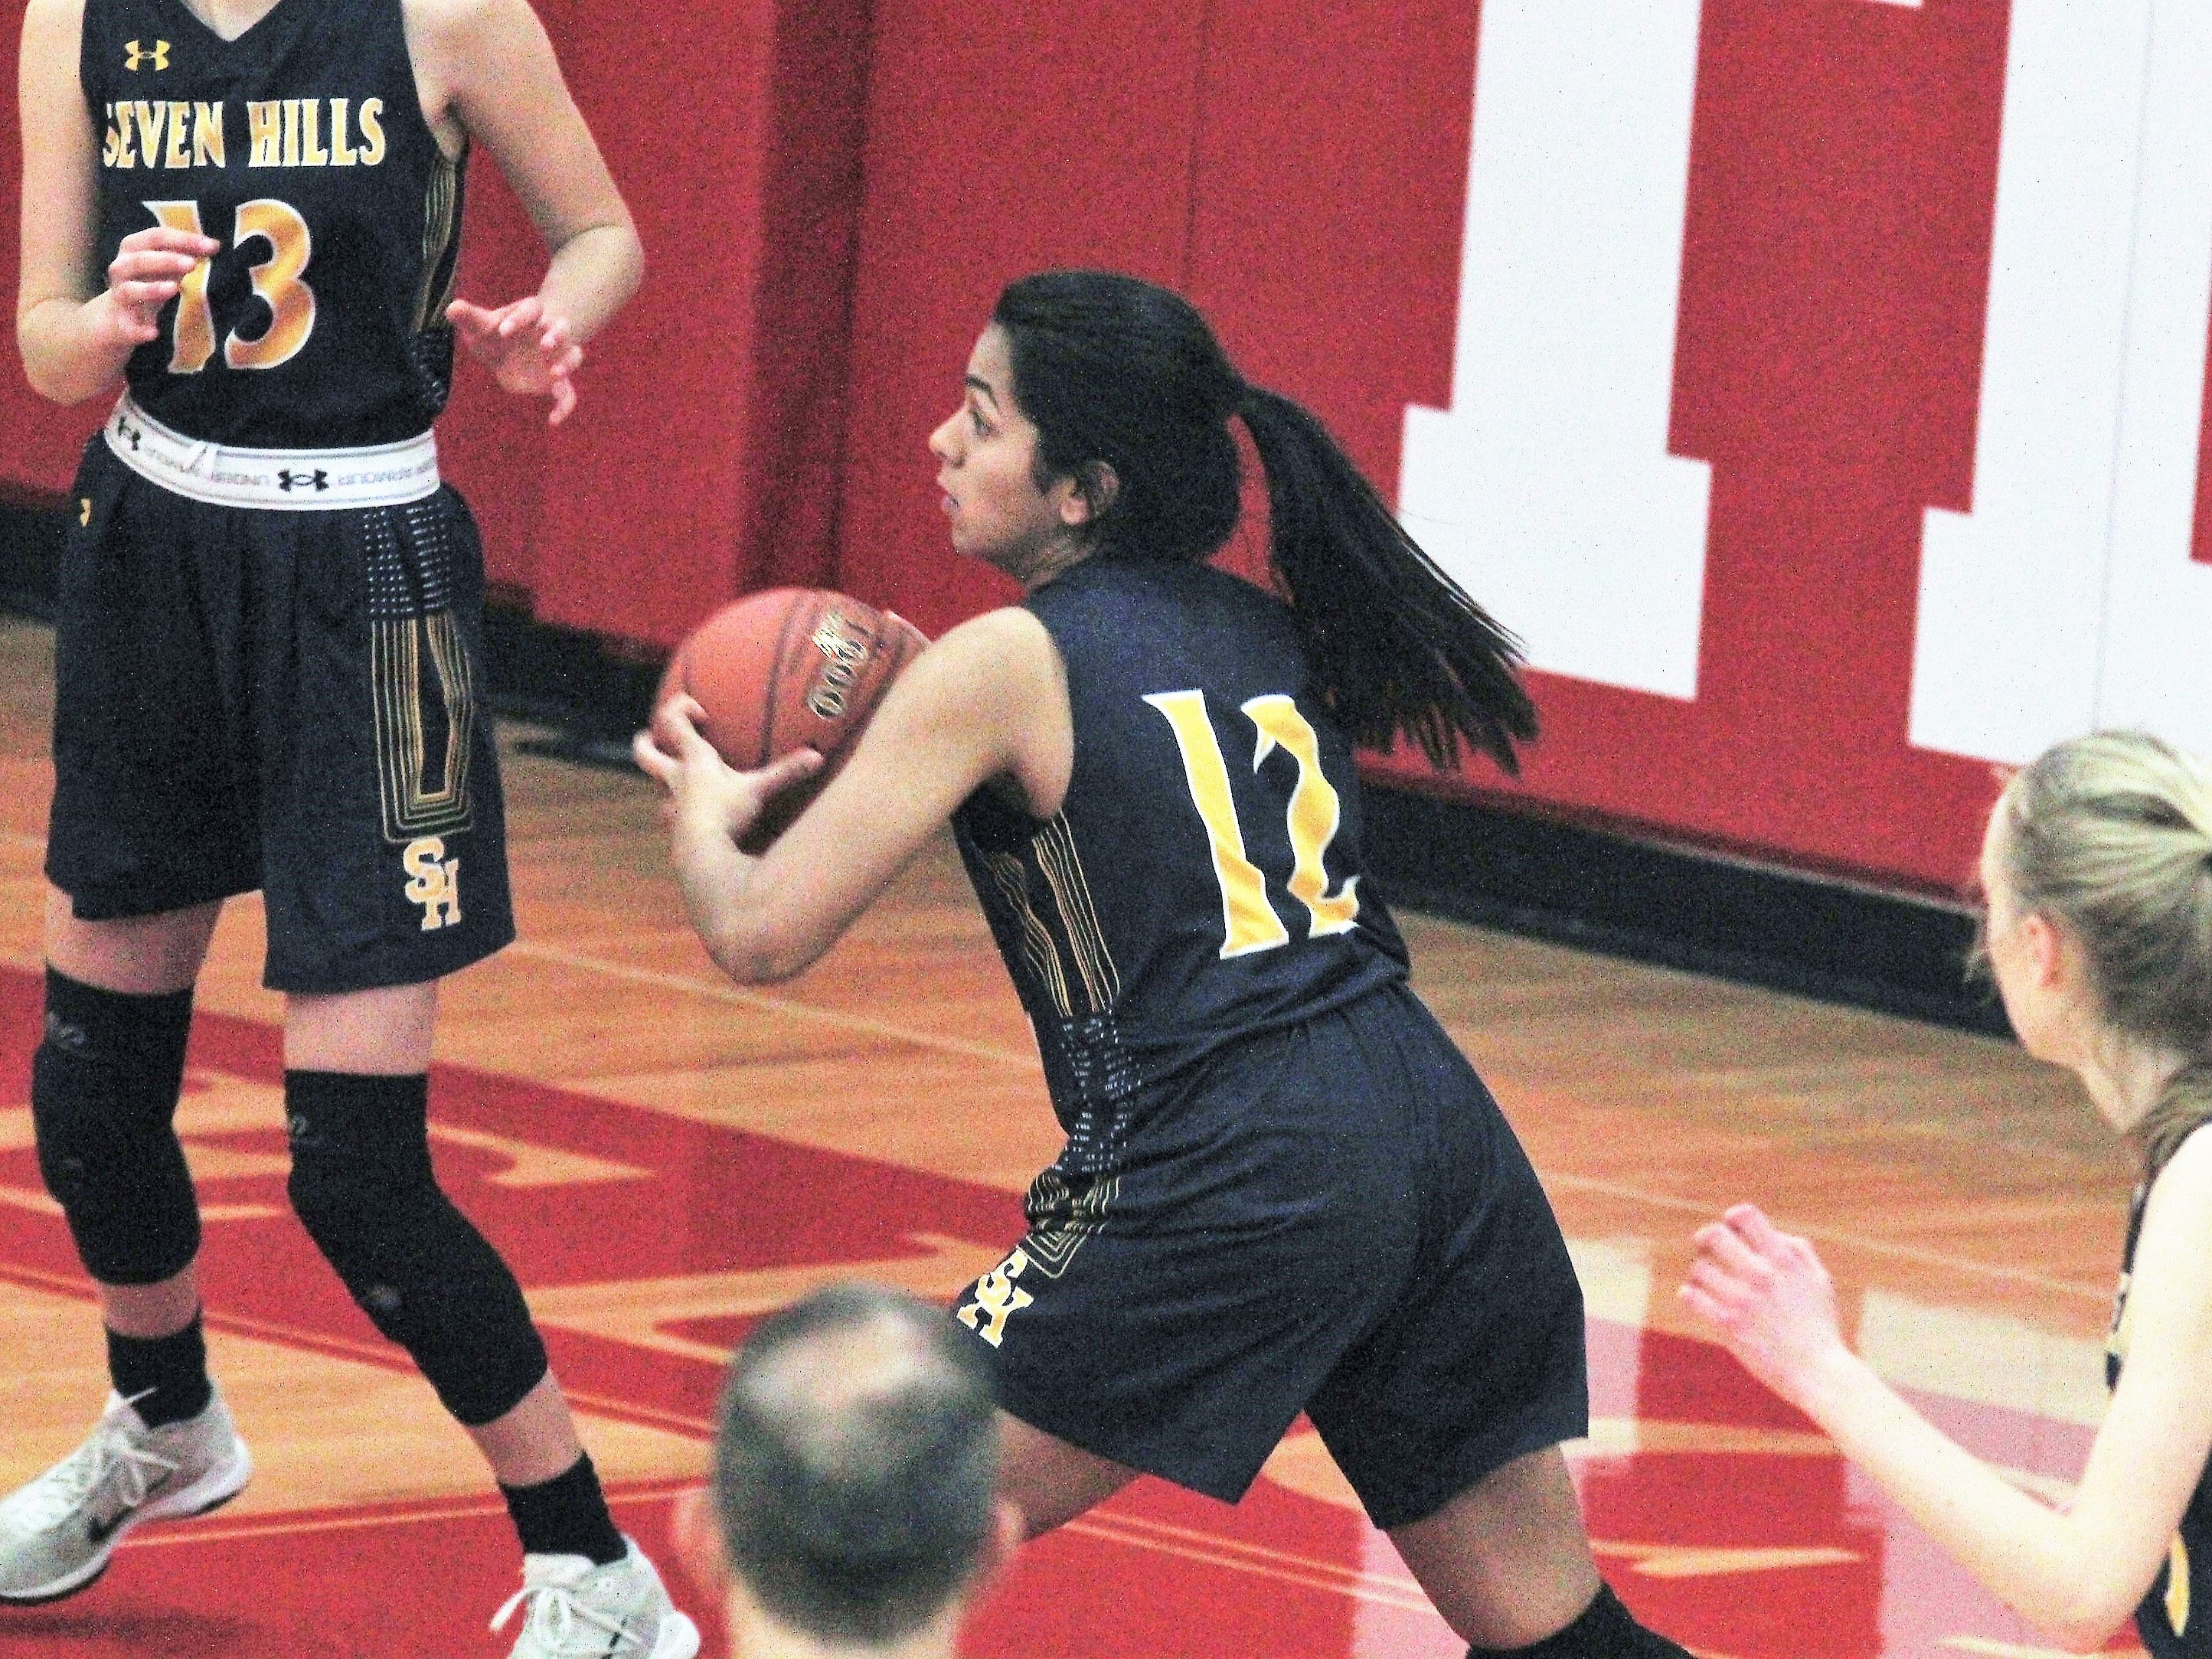 Shriya Kilaru of Seven Hills grabs the rebound and looks to make an outlet pass as Beechwood beat Seven Hills 57-54 in girls basketball Jan. 15, 2019 at Beechwood HS, Fort Mitchell KY.